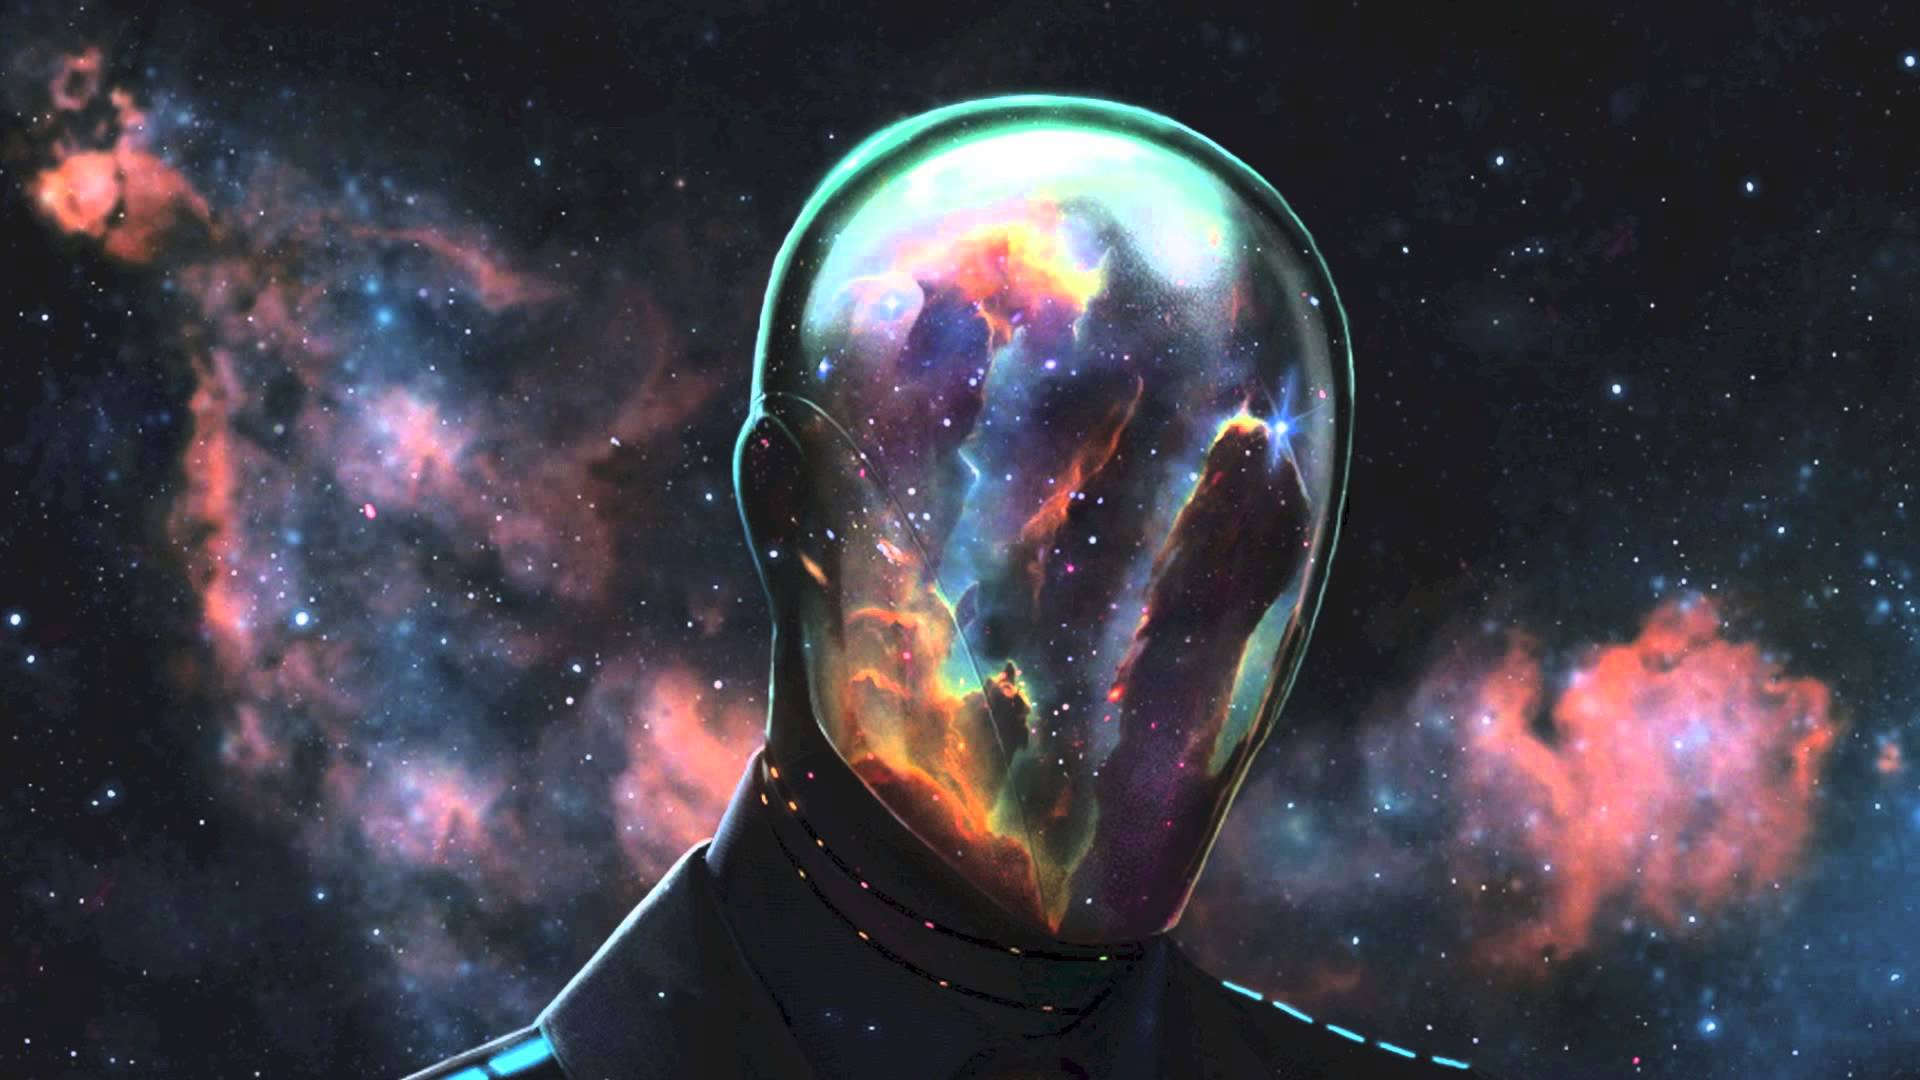 The Mind's Mirror, What Does it See?